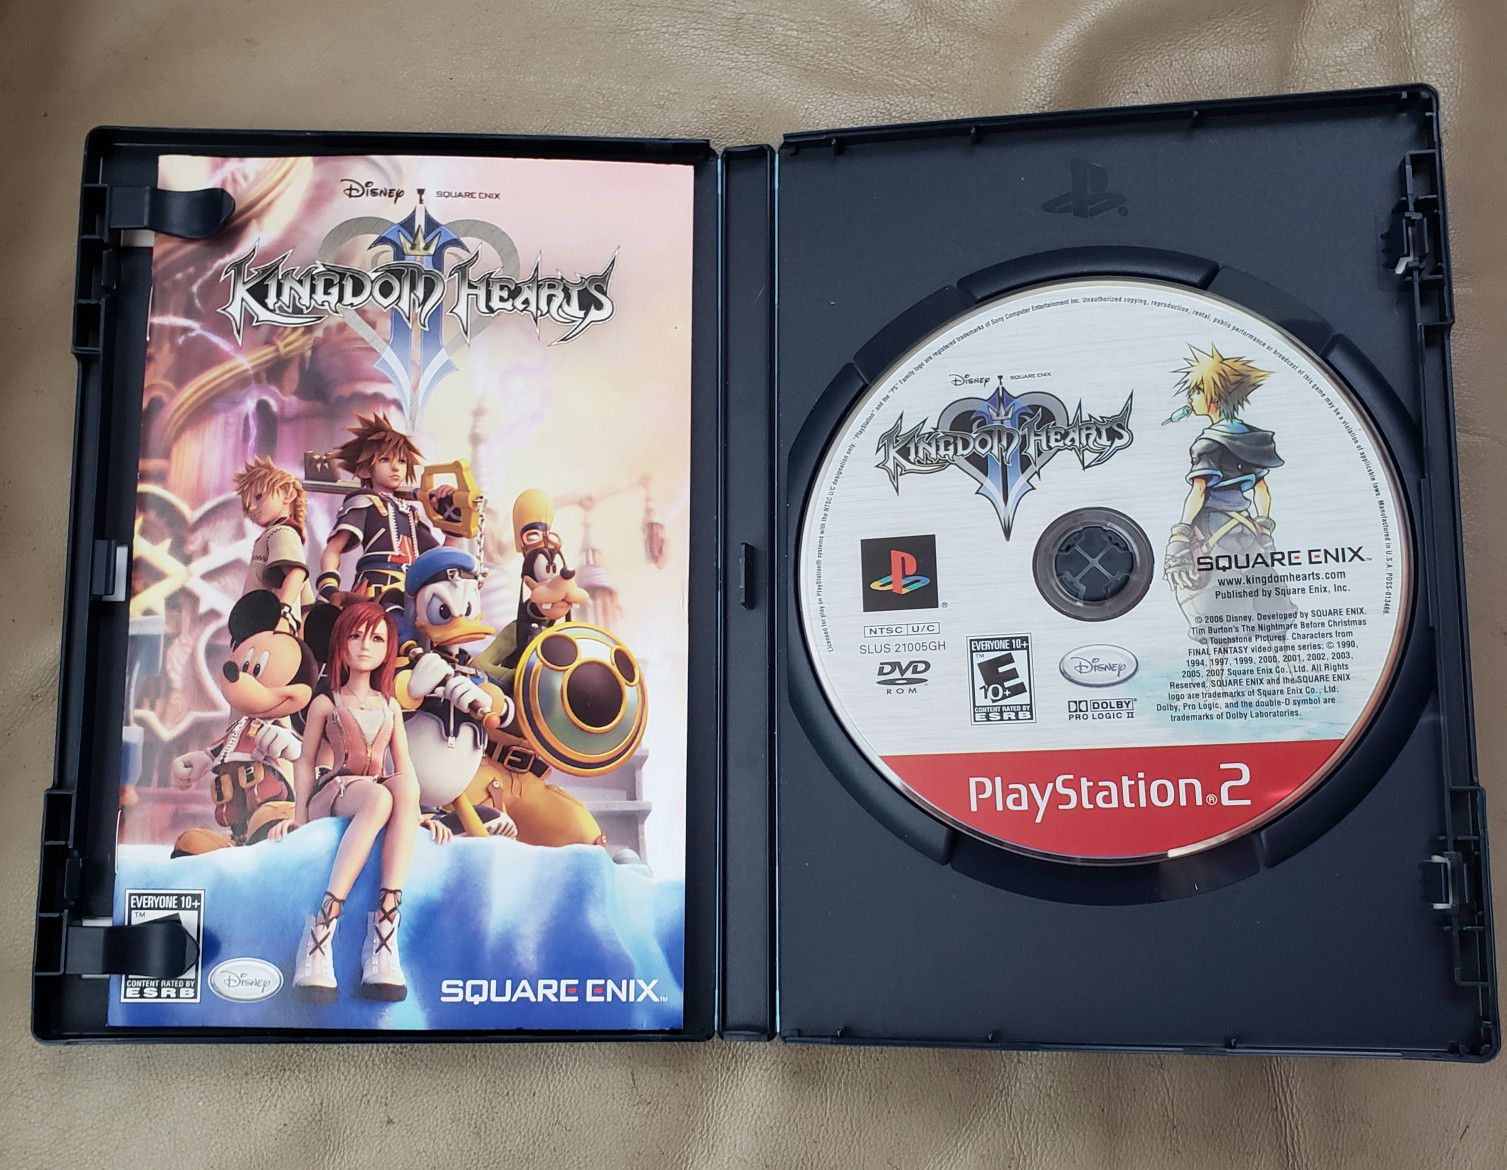 KINGDOM HEARTS PlayStation 2 Greatest Hits video game